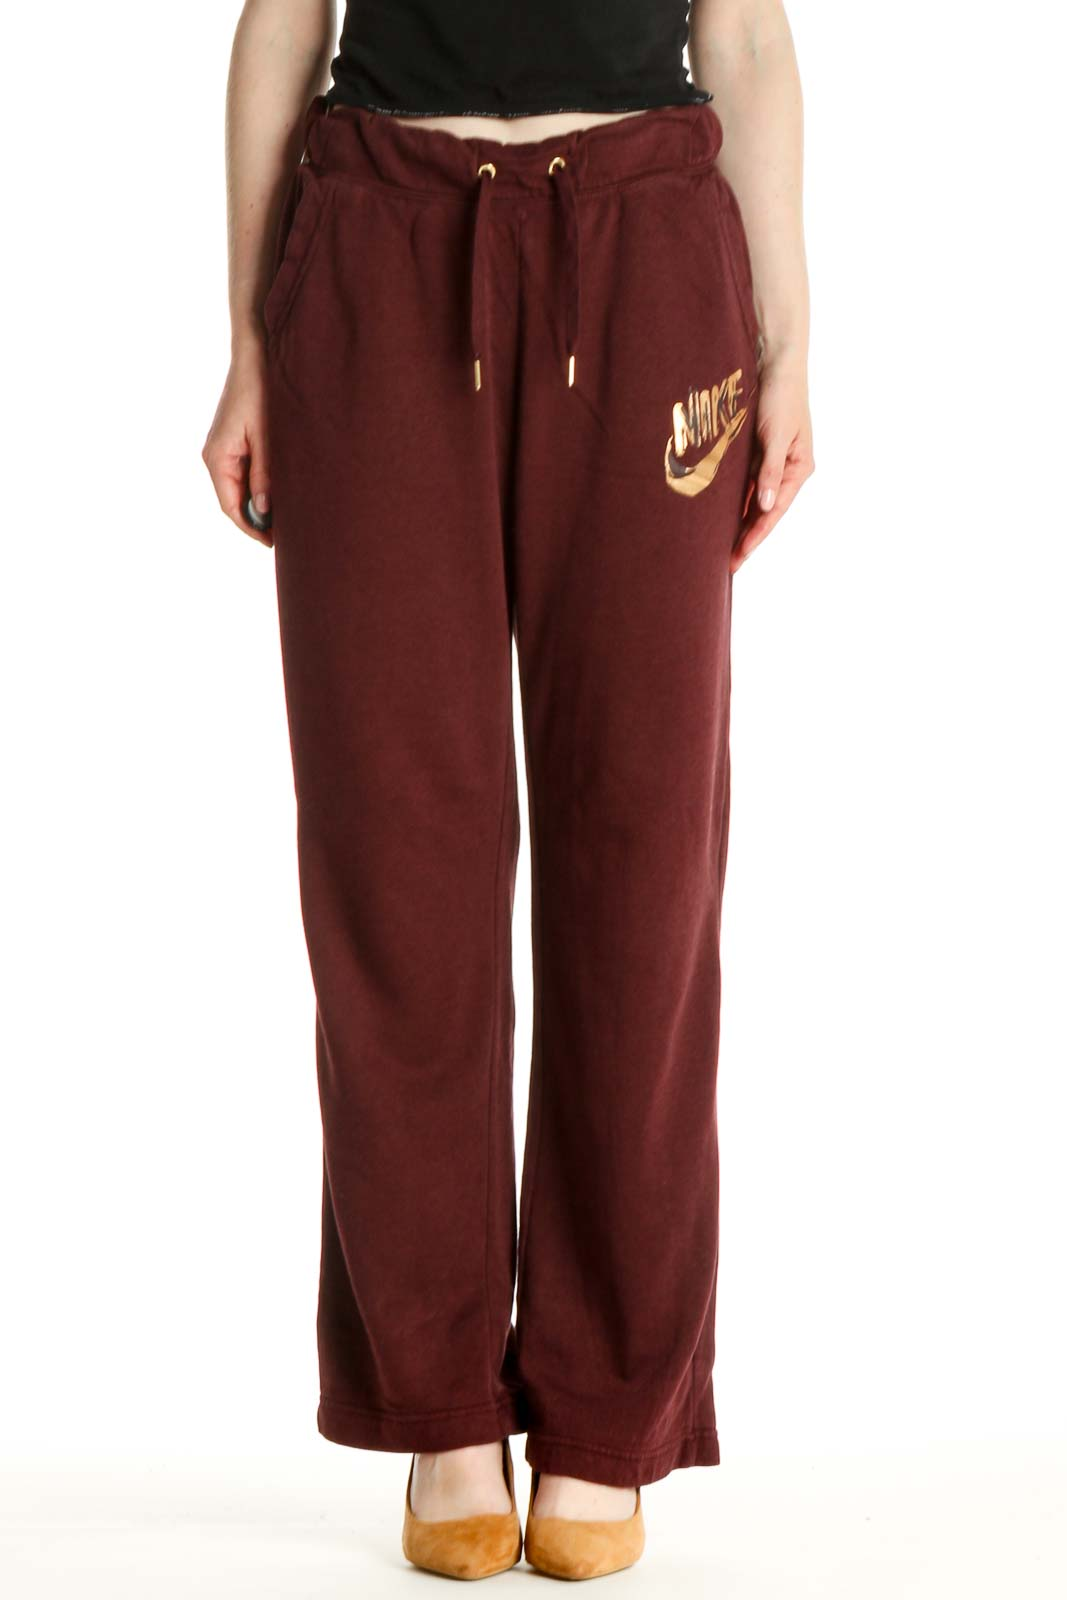 Red Solid Casual Sweatpants Front